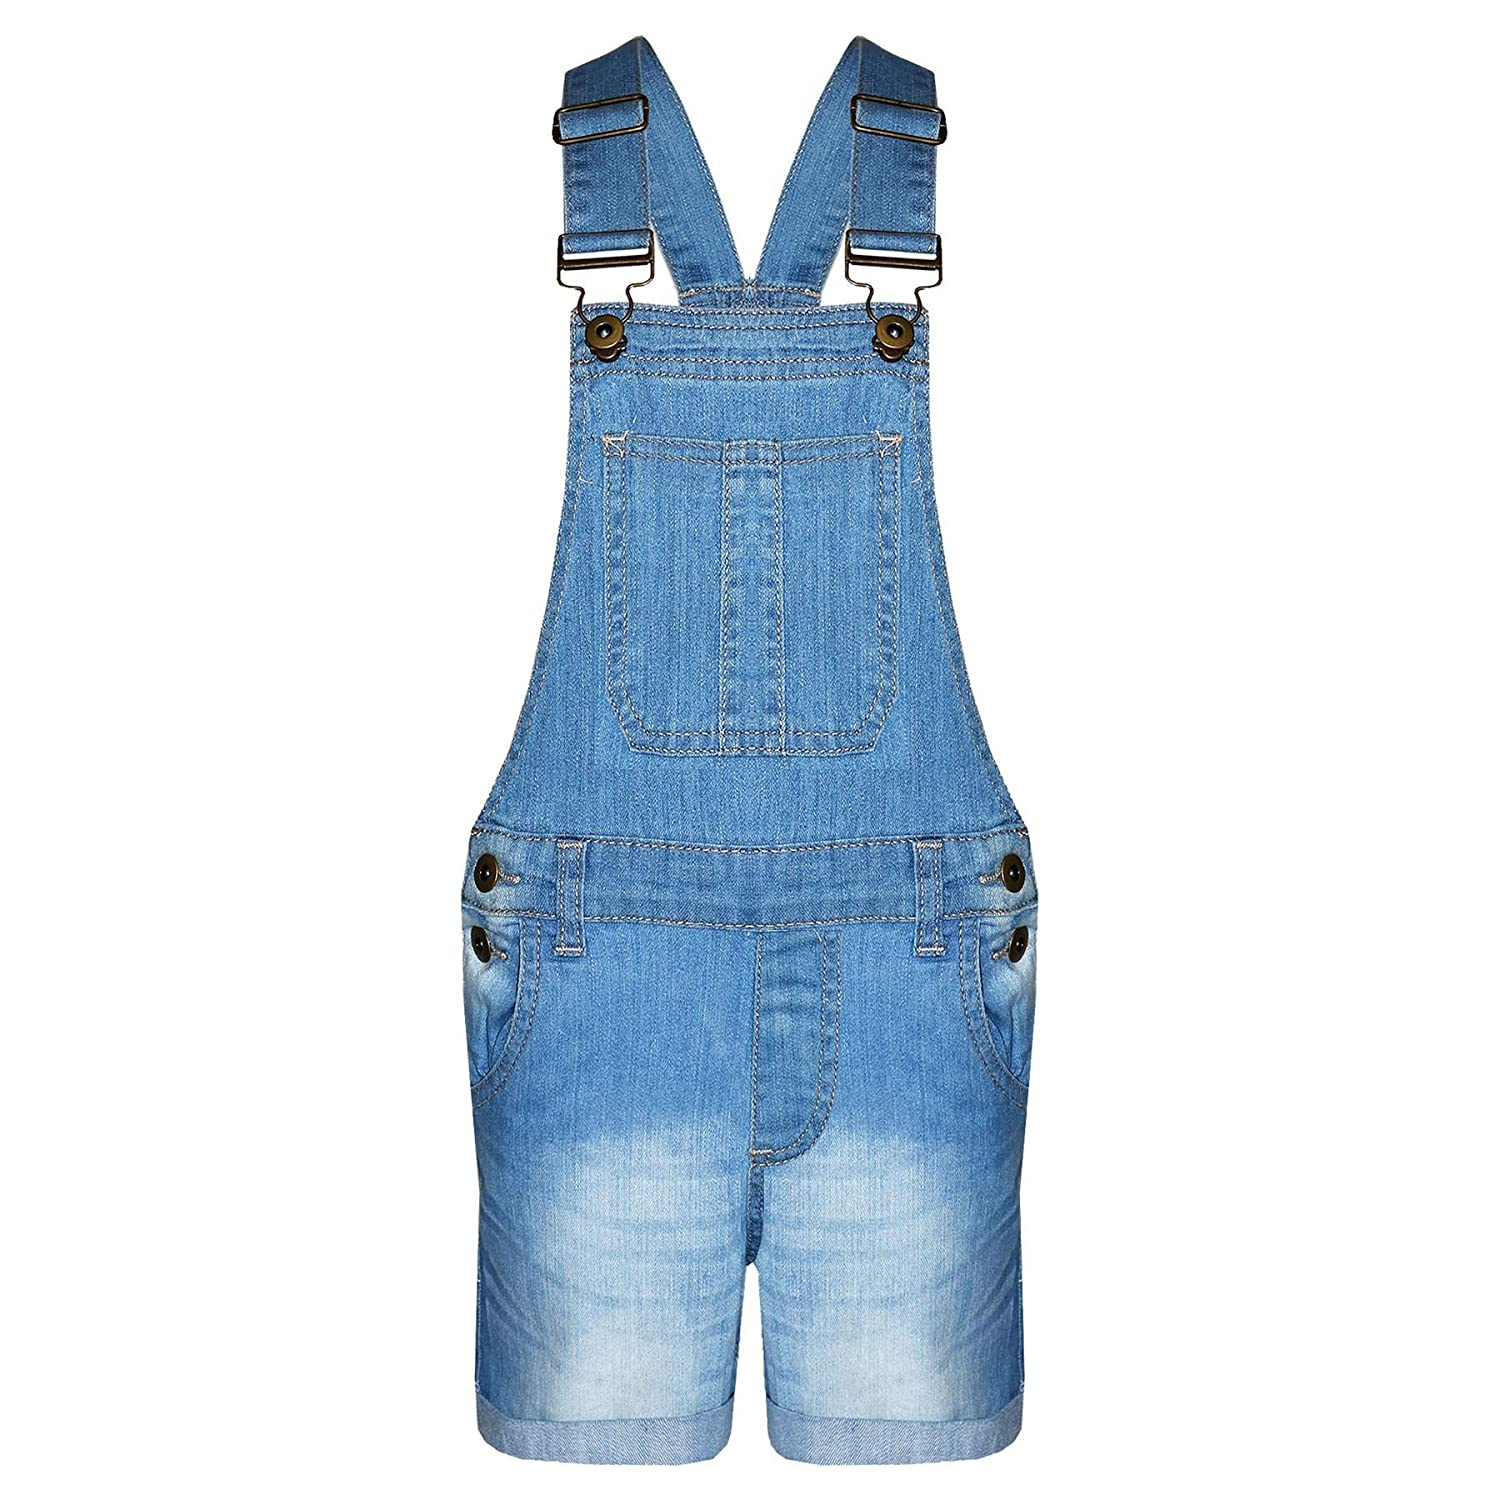 A2Z 4 Kids®® Girls Denim Stretch Dungaree Shorts Jumpsuit Playsuit All in One